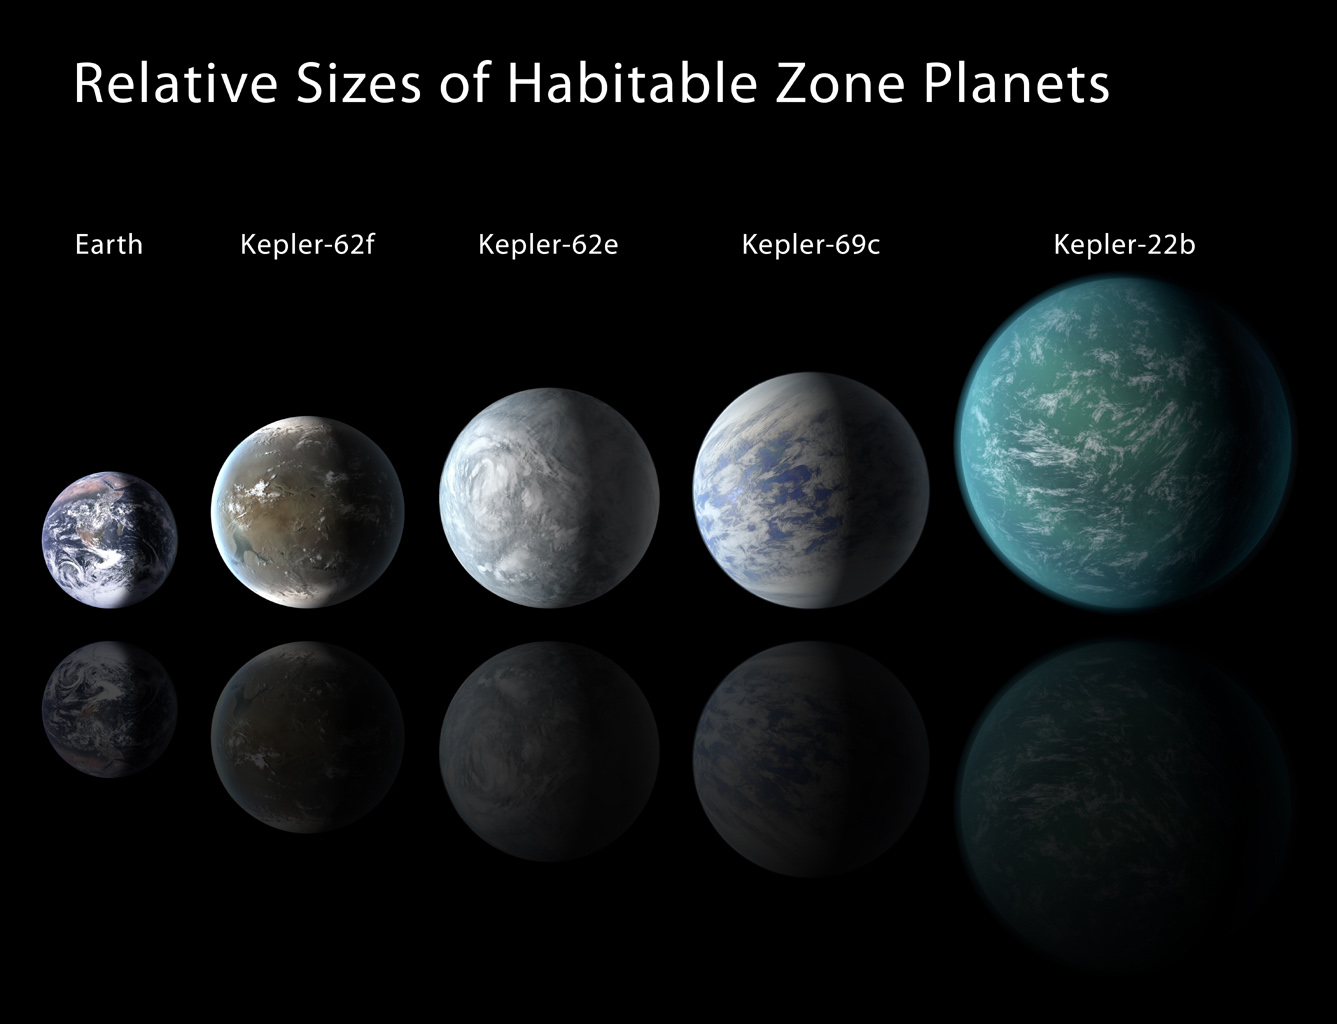 Relative sizes of Kepler habitable zone planets discovered as of 2013 April 18. Except for Earth, these are artists' renditions.